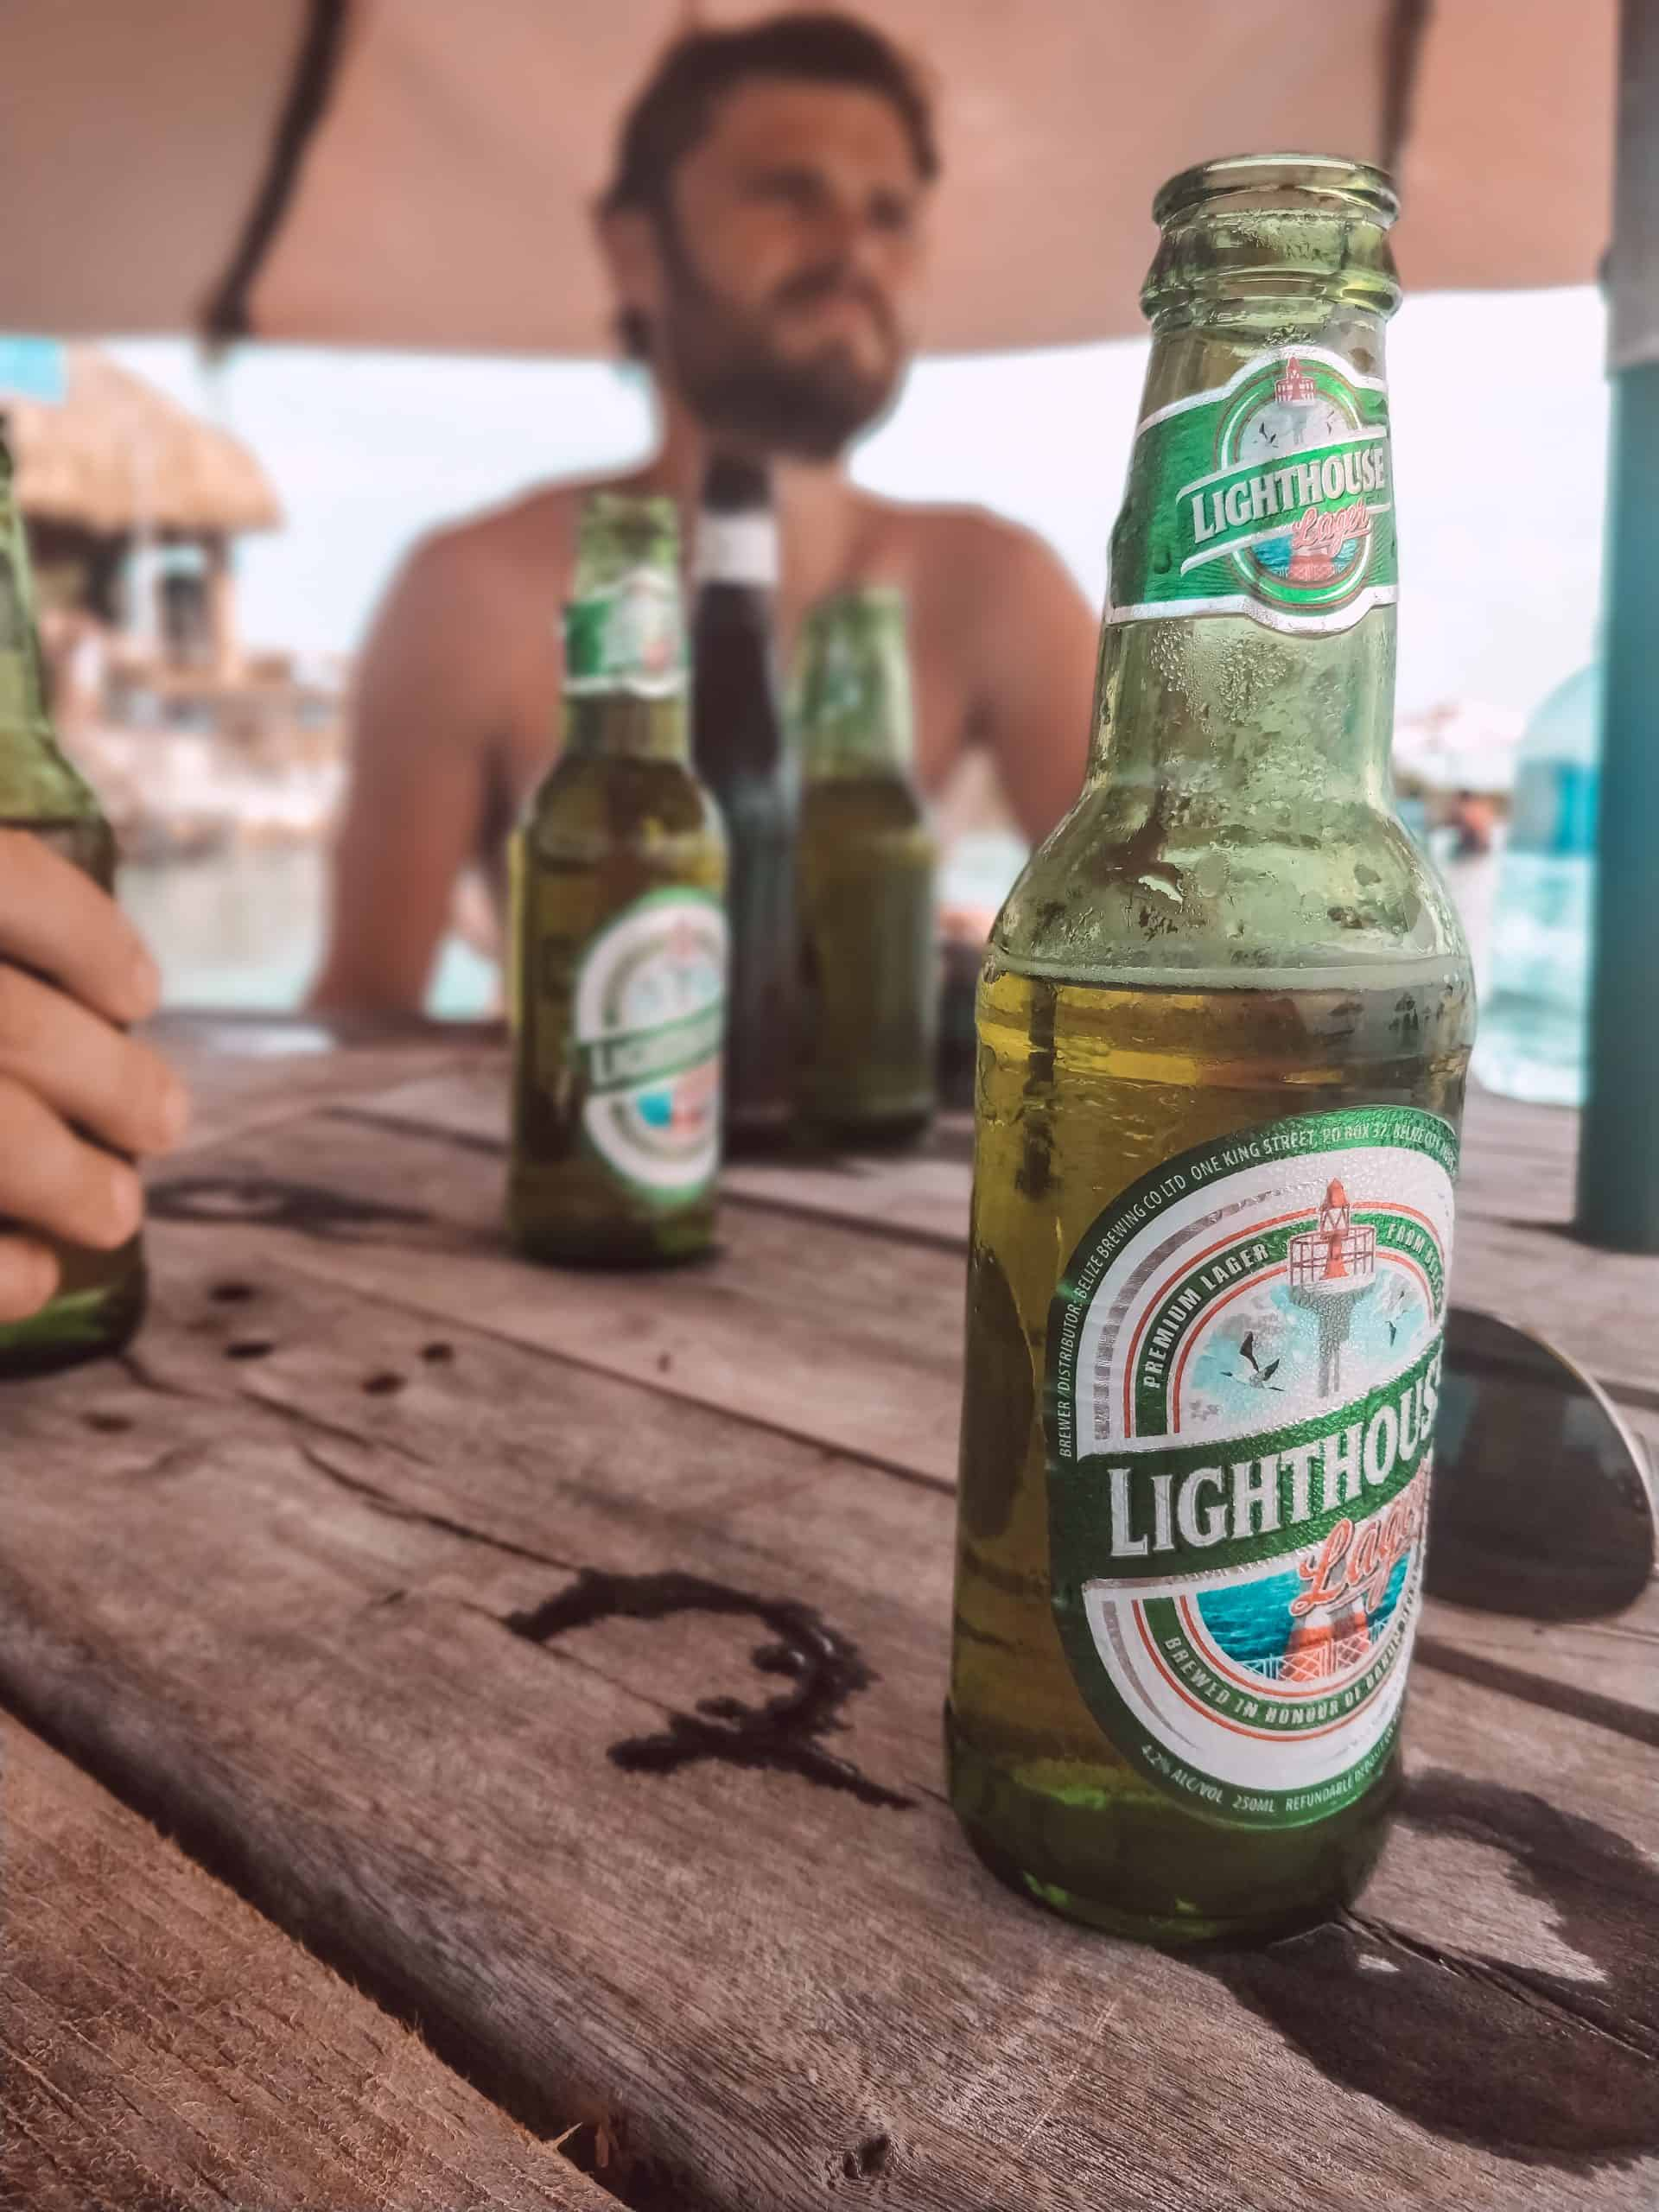 Lighthouse beers on a table in San Pedro, Belize